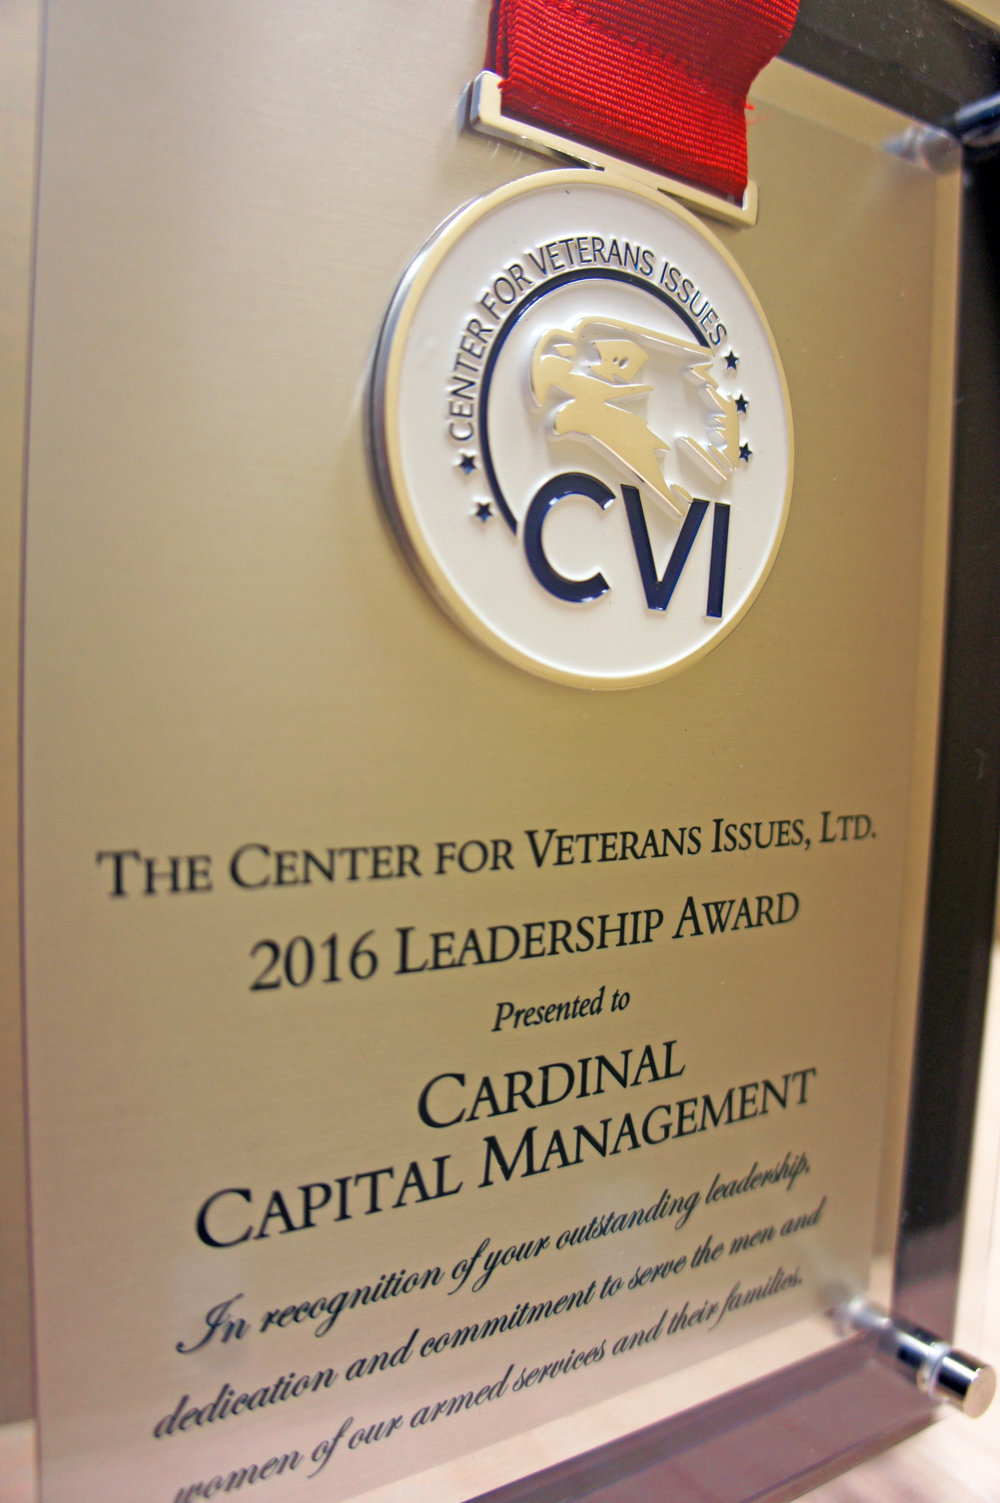 2016 Leadership Award